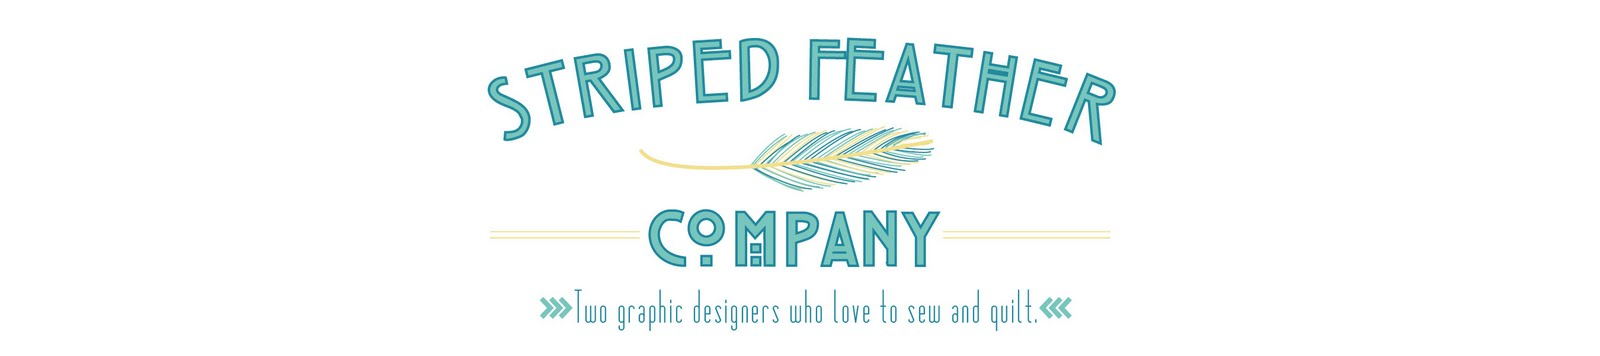 The Striped Feather Company